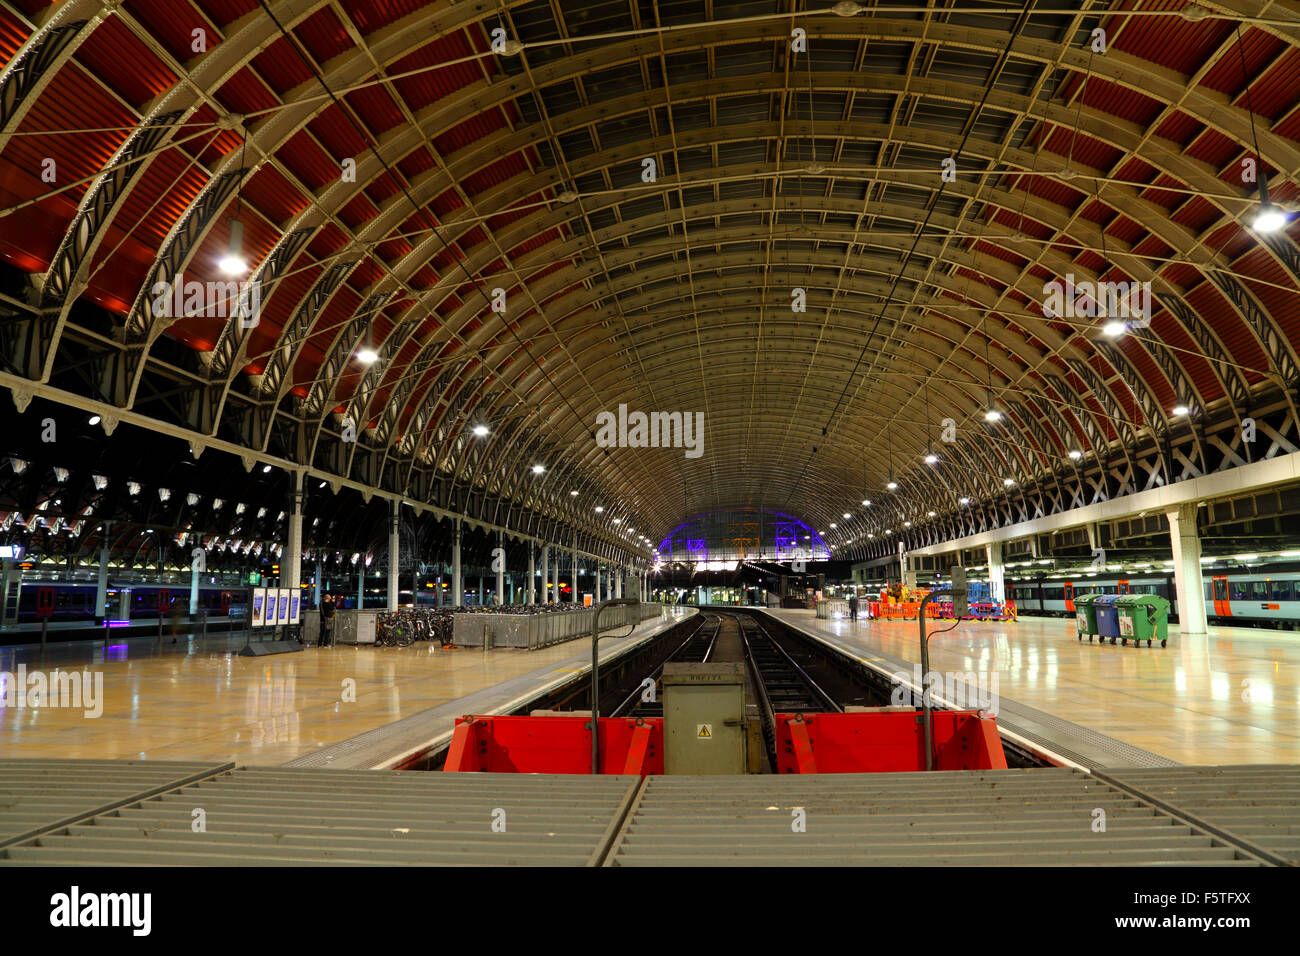 A view looking along platforms 10 and 11 at London Paddington Railway station showing the buffers and lighting at - Stock Image